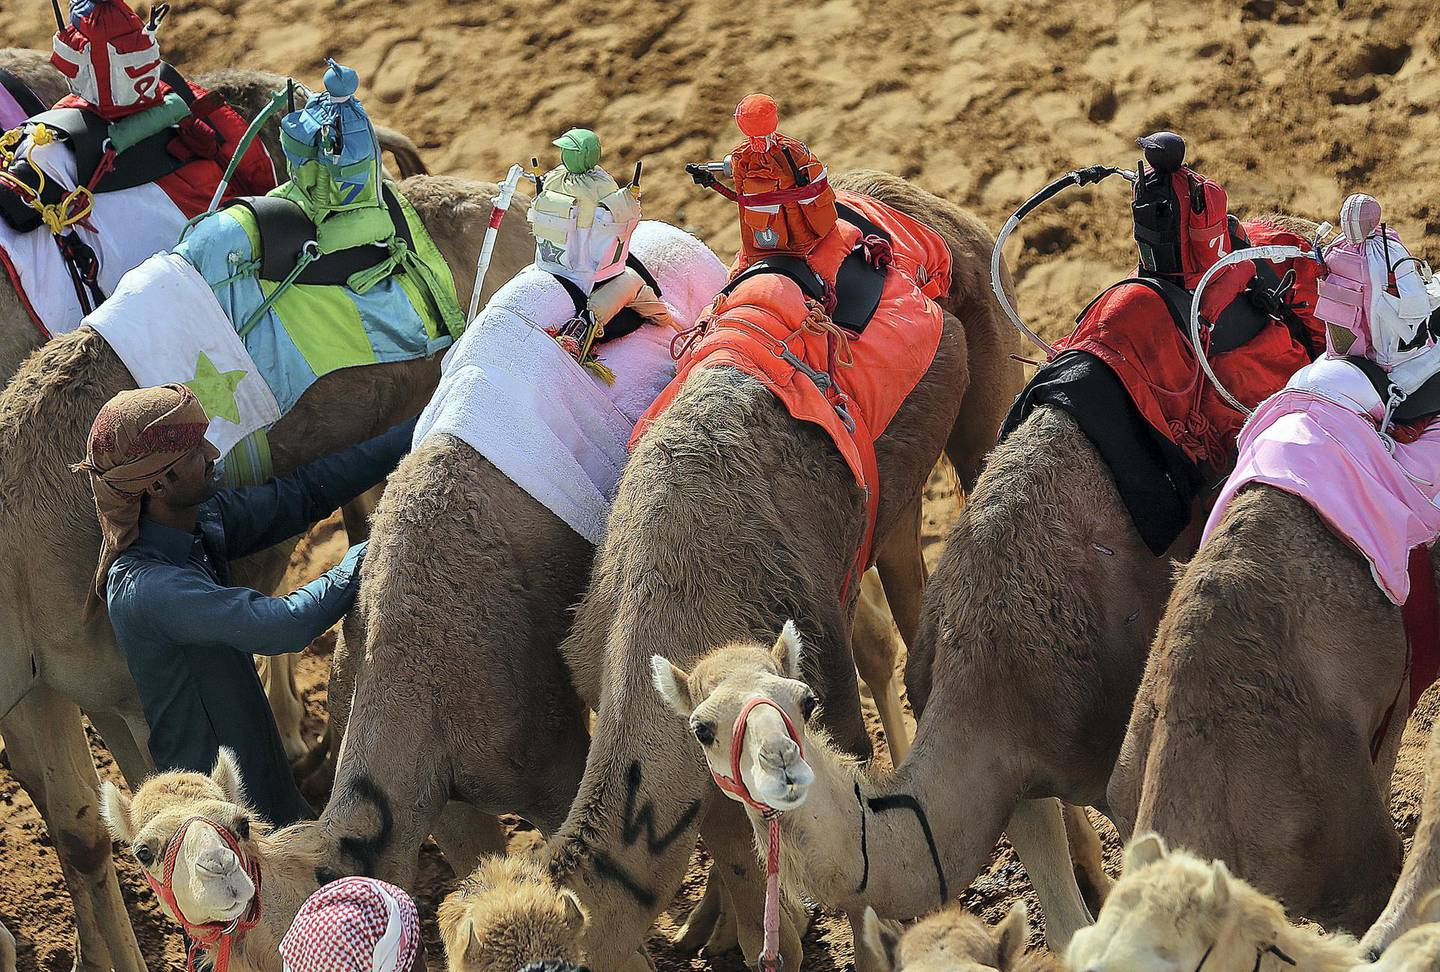 Dubai, April, 06, 2019: Camels participate on the first day of the Marmoom season finals for the camel racing season at Al Marmoom Heritage Village in Dubai. Satish Kumar/ For the National / Story by Anna  Zacharias